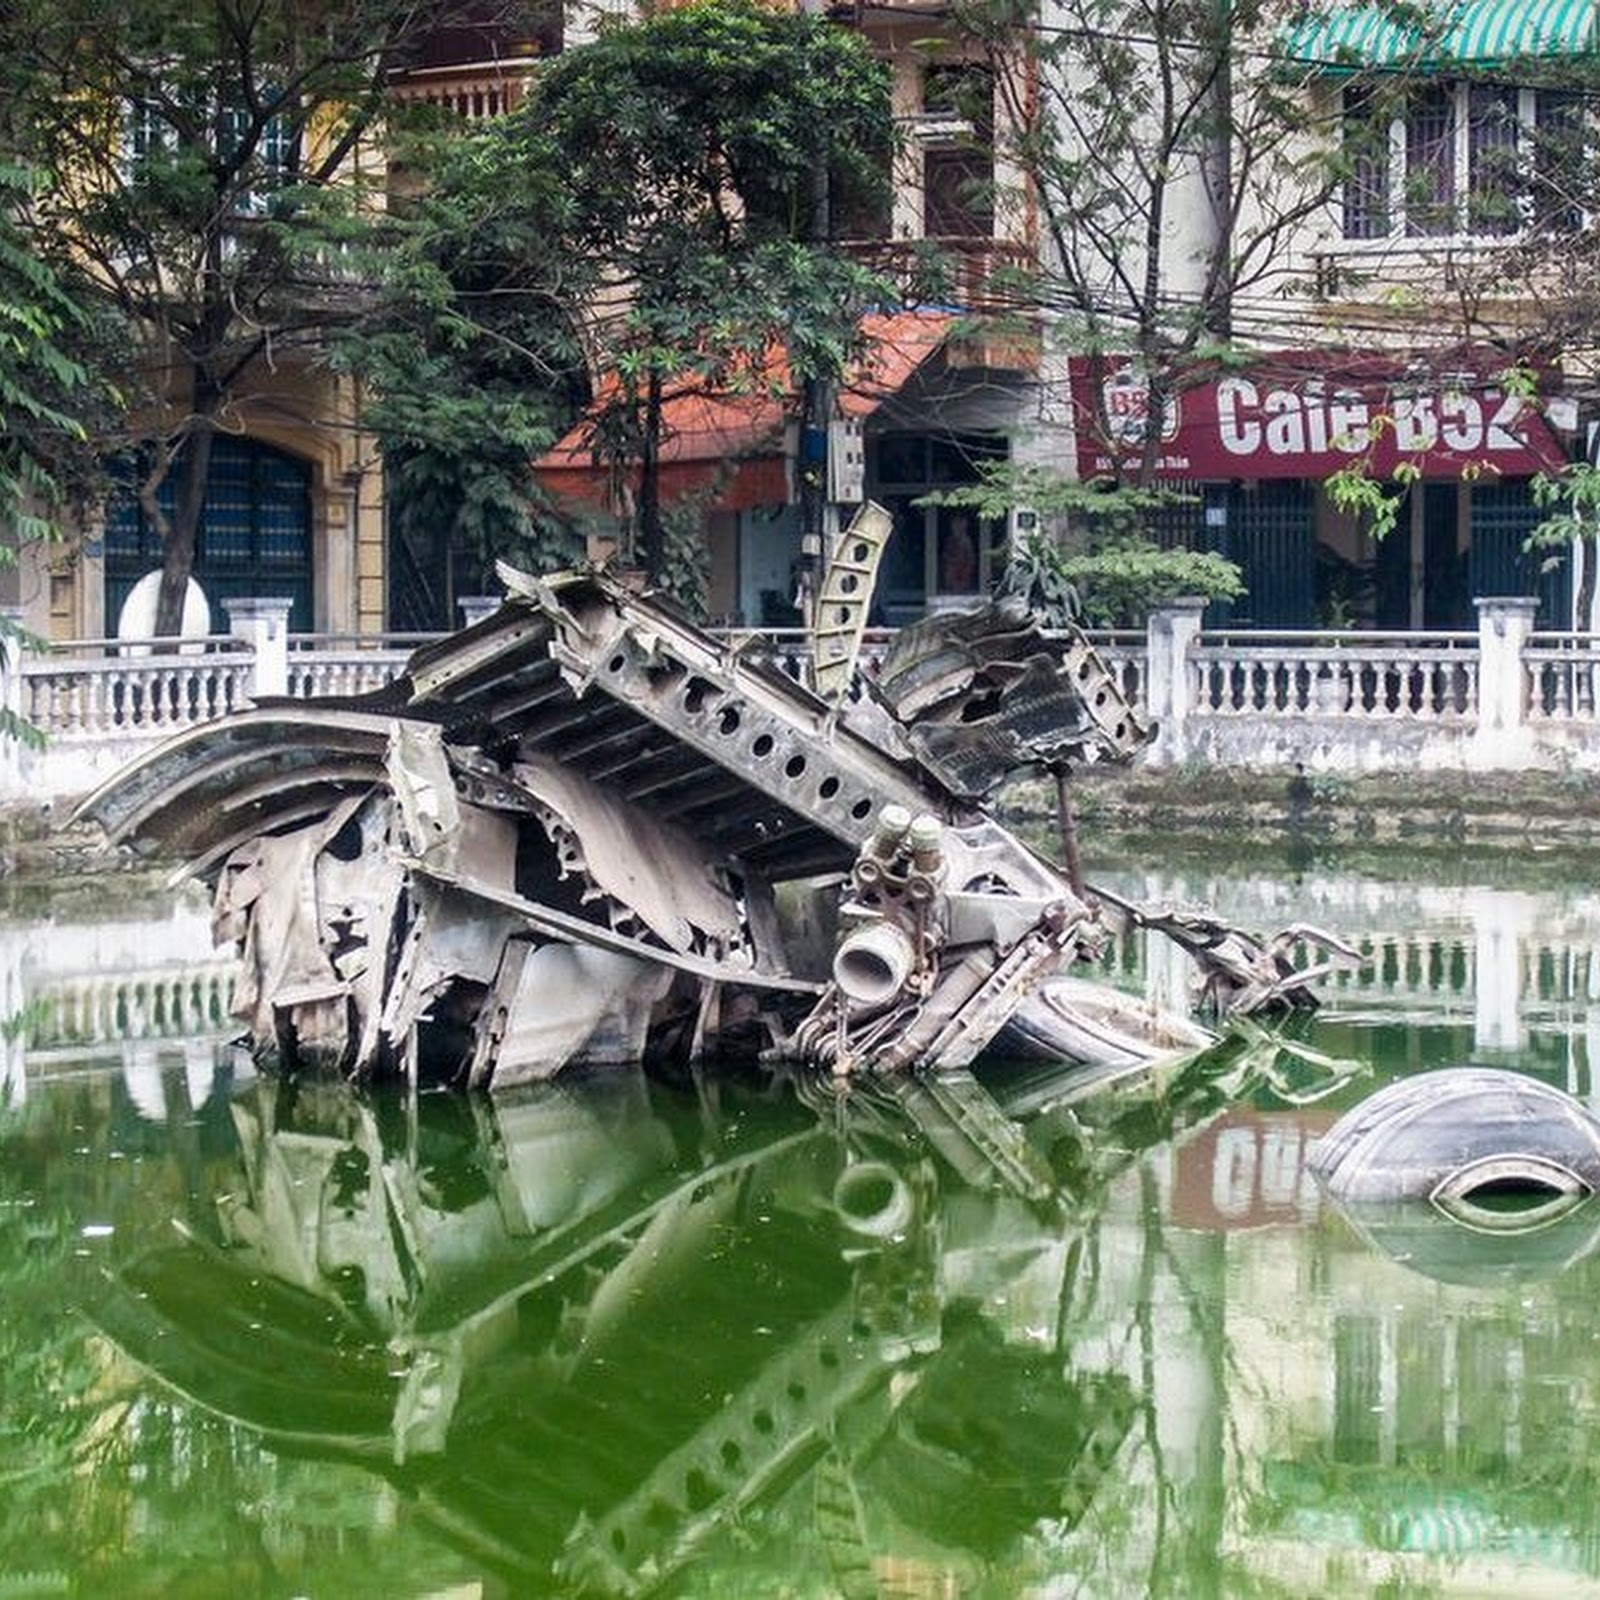 The Wrecked Bomber of Huu Tiep Lake